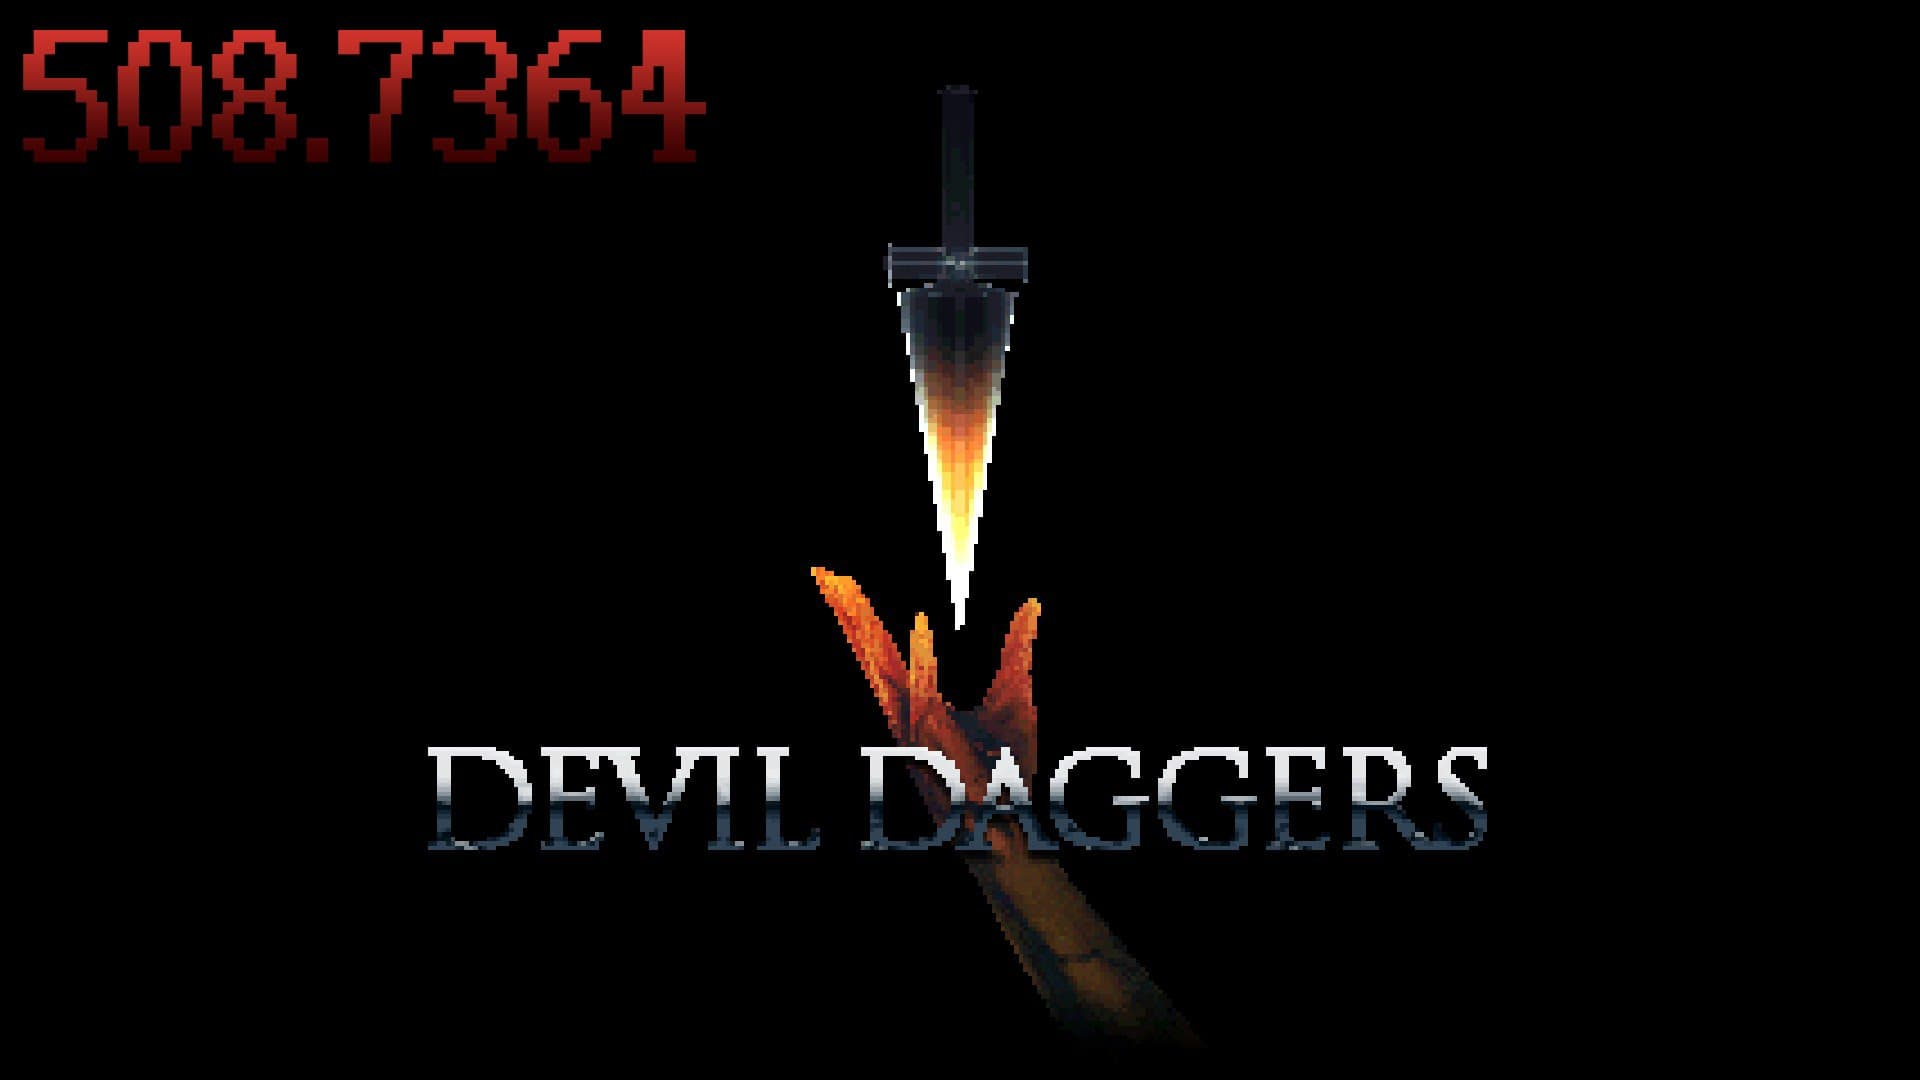 Devil Daggers Wallpapers hd